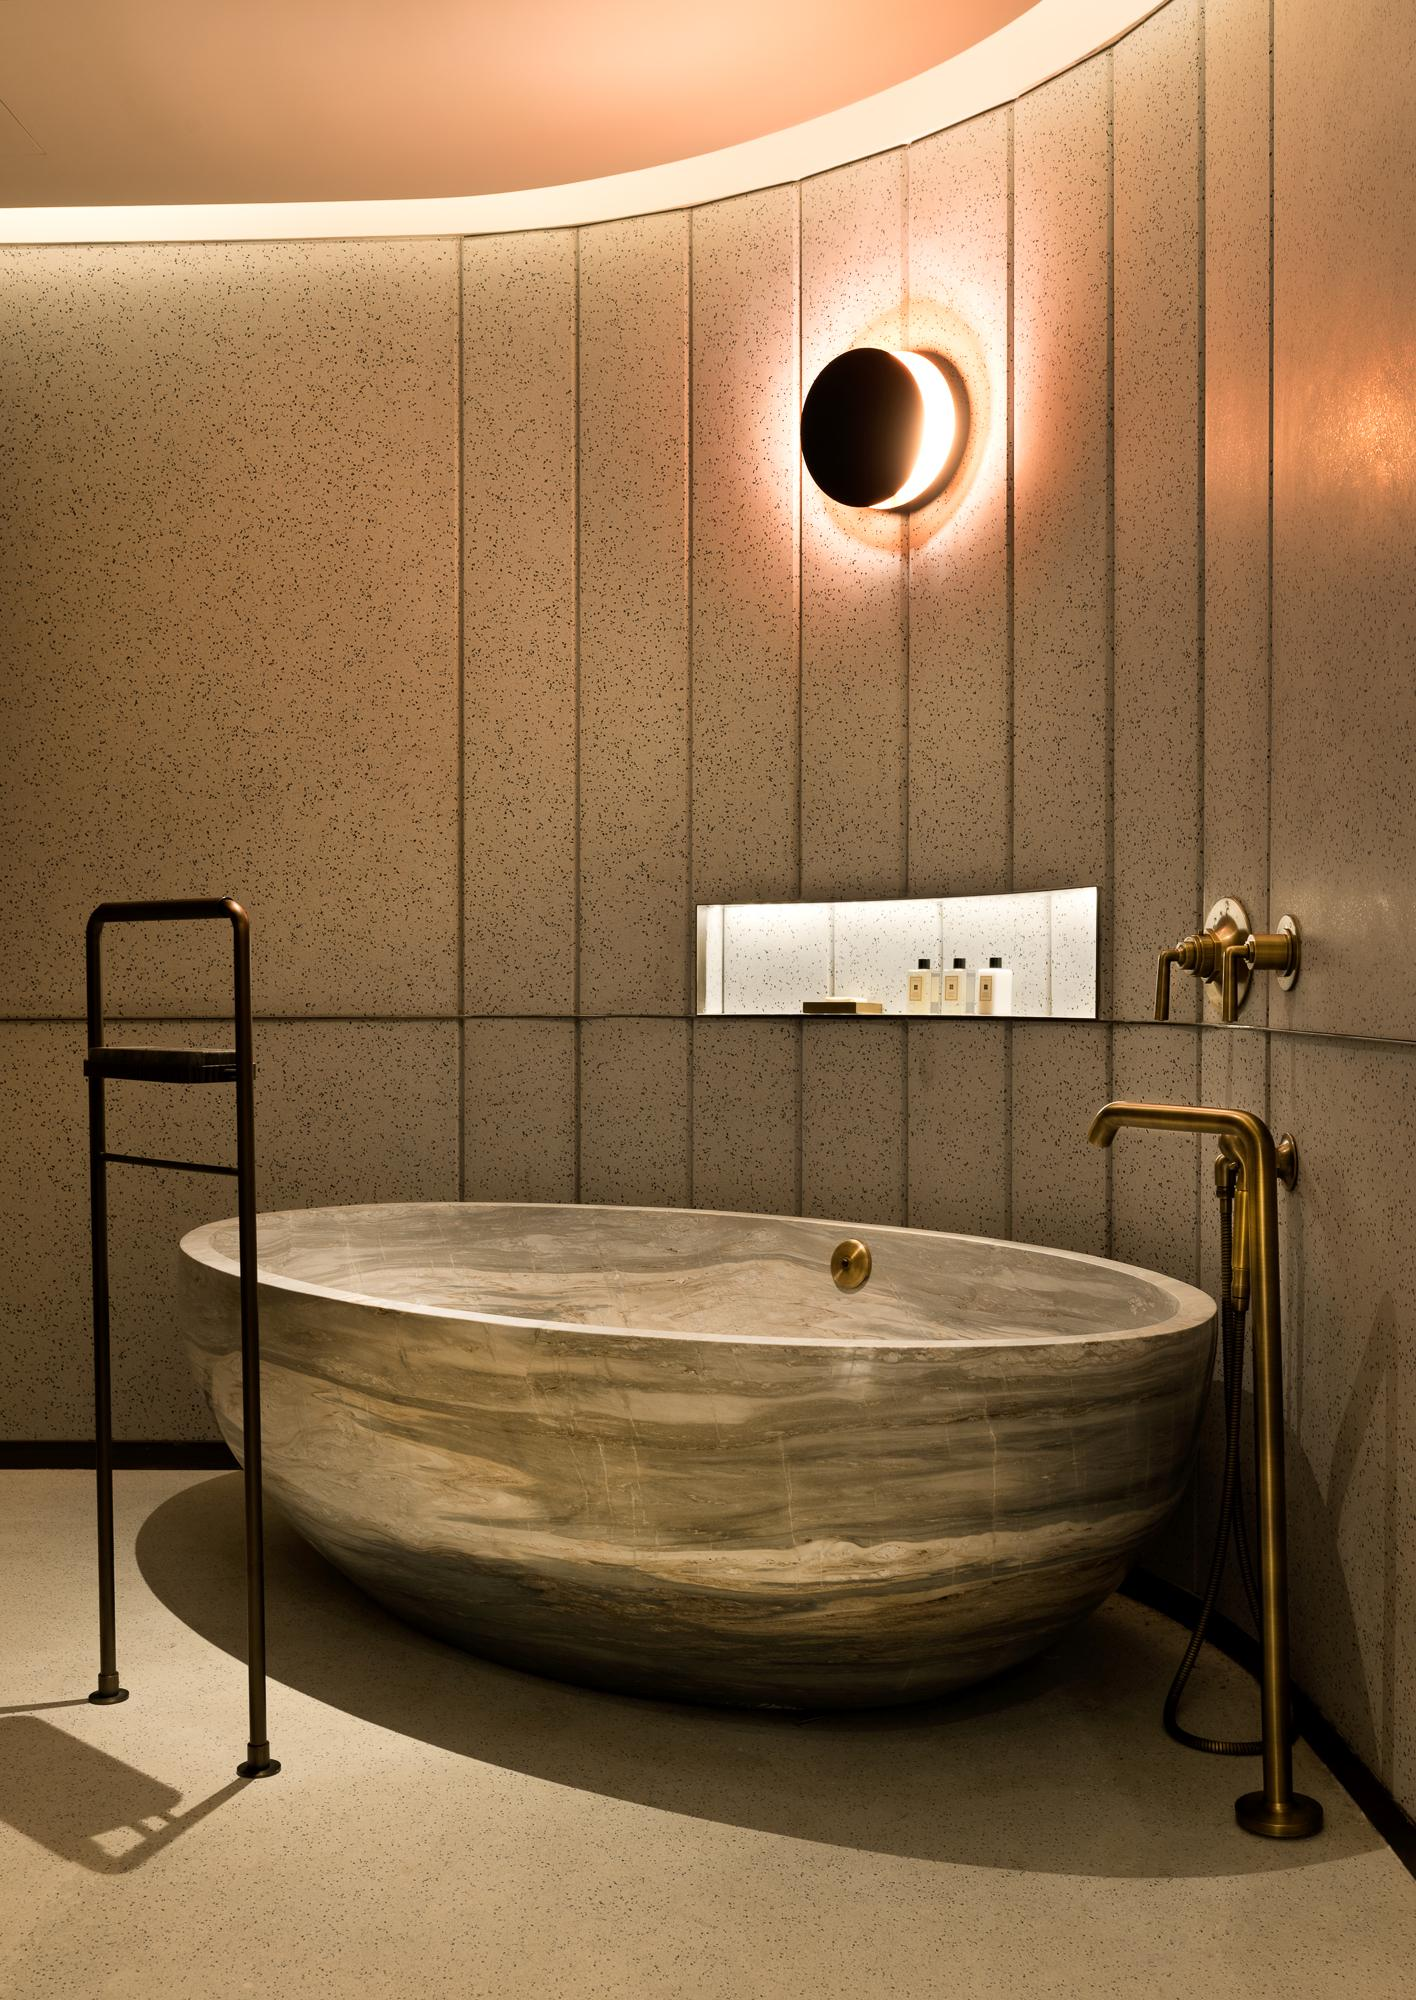 The suite's master bathroom has been built around a freestanding one piece marble Palissadro bathtub